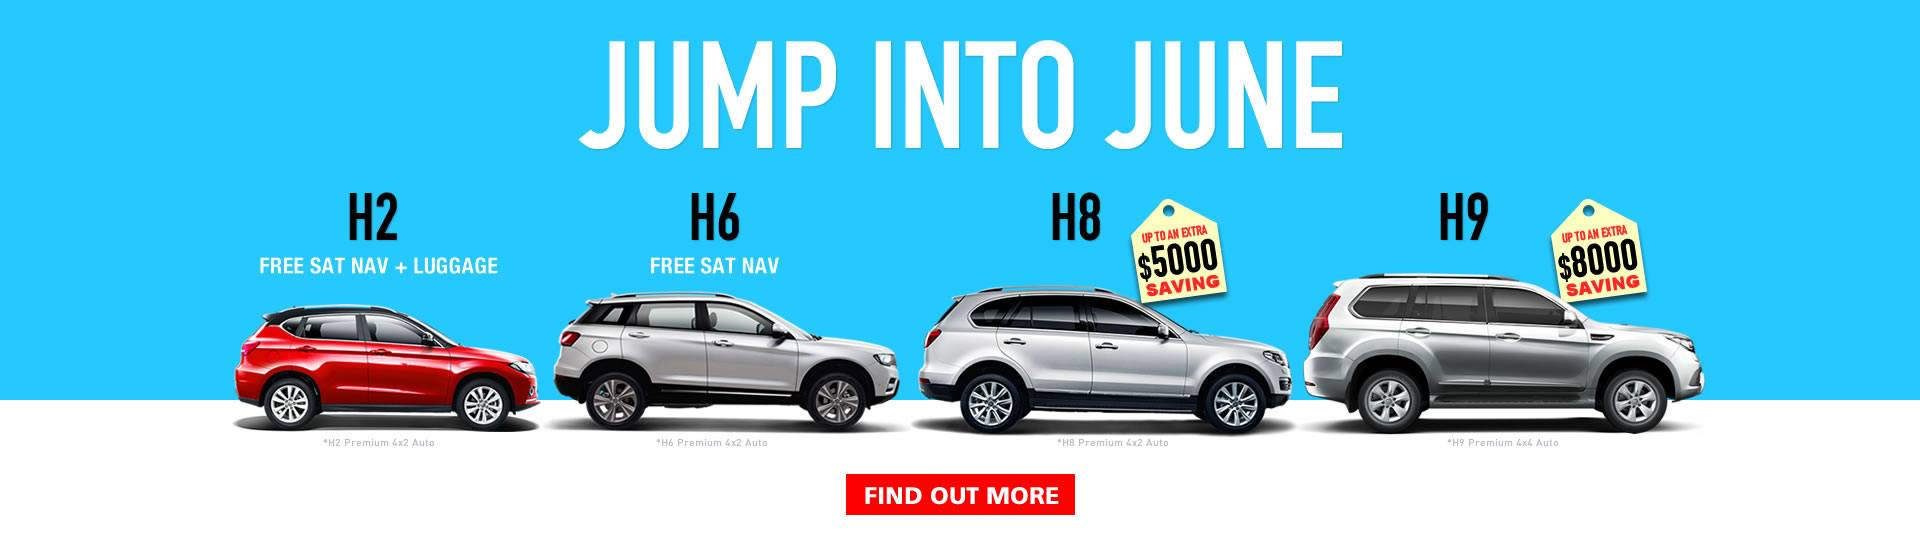 HAVAL Jump into June